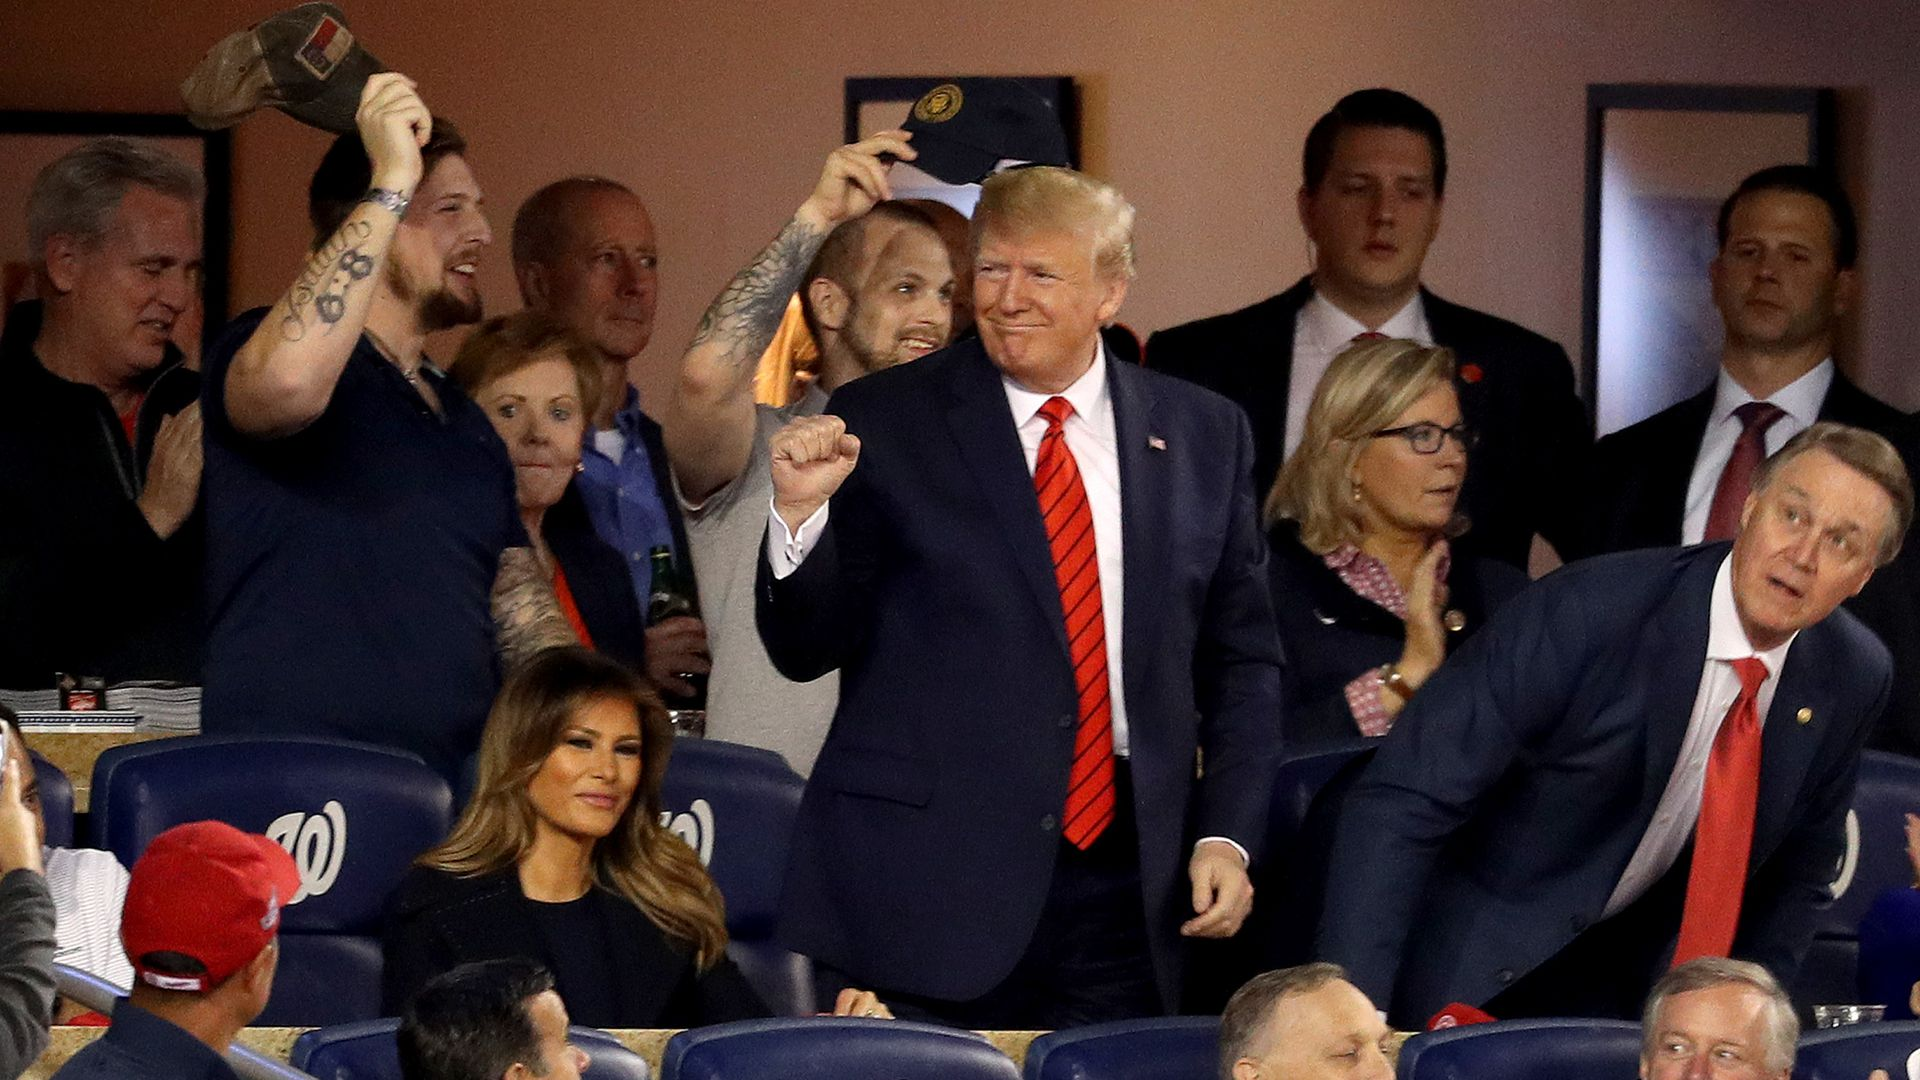 President Trump raises a fist in the stands of the Washington Nationals game.